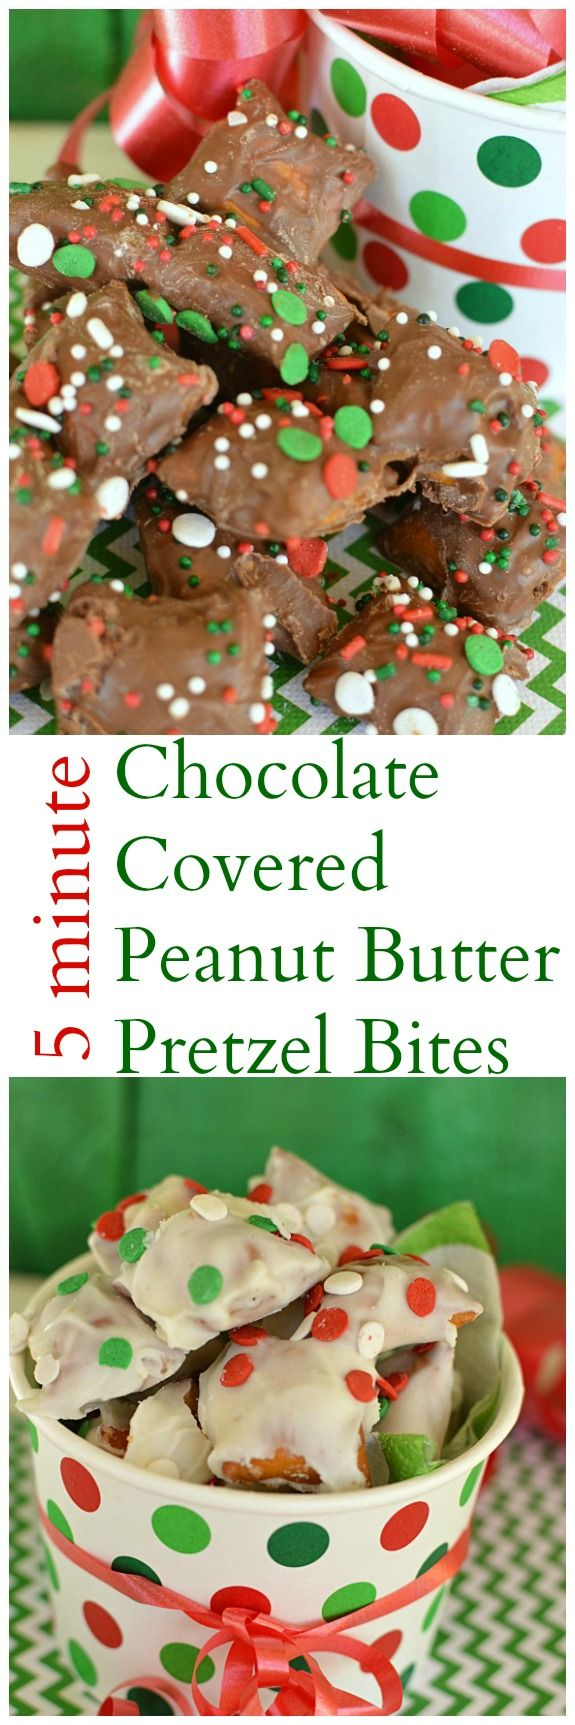 Best 25 chocolate covered peanuts ideas on pinterest for Some good christmas treats to make